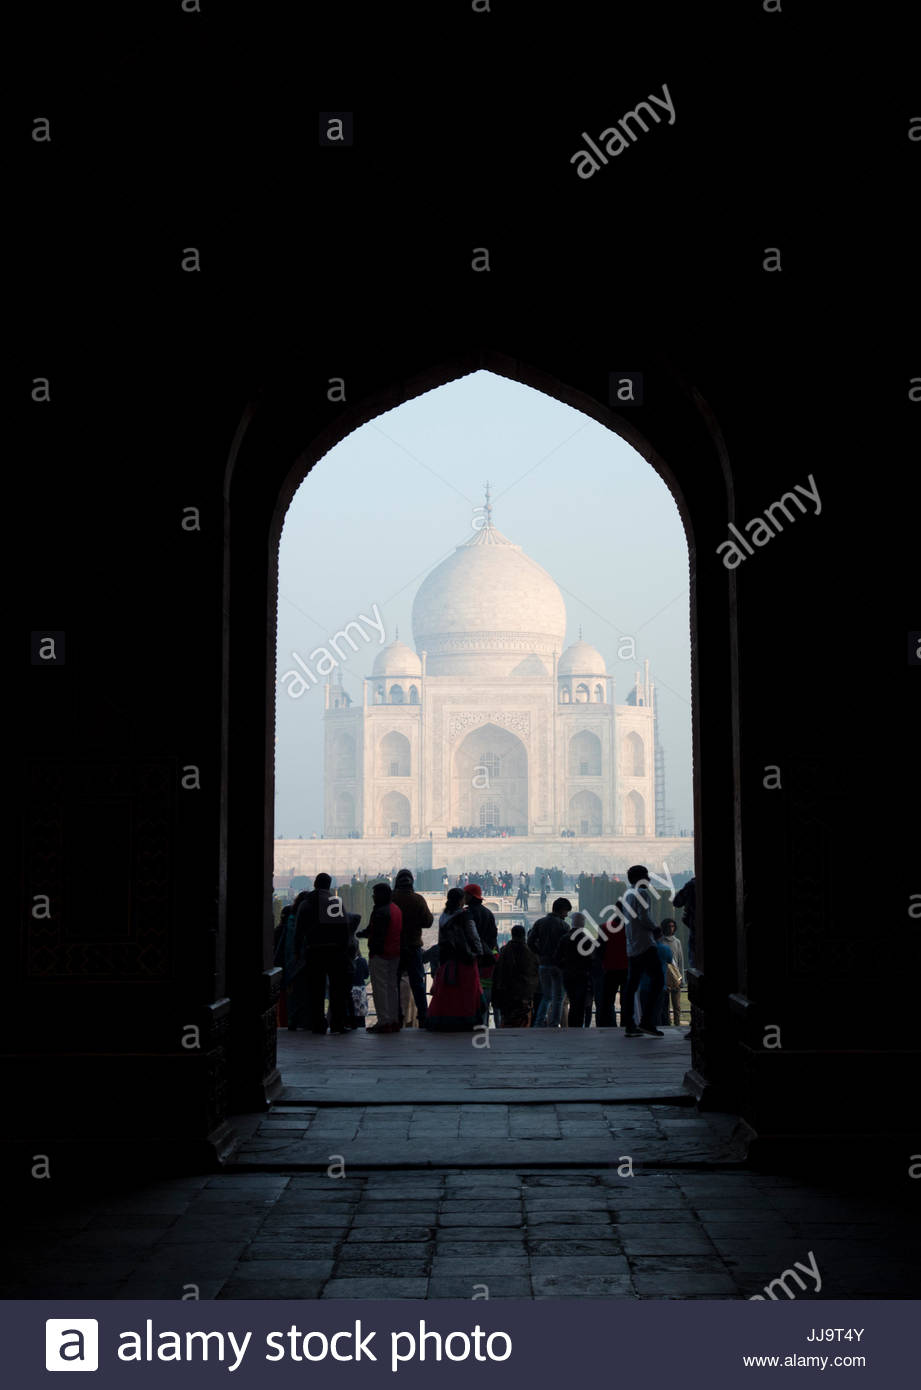 People stand at the entry way to the Taj Mahal in Agra, India. - Stock Image